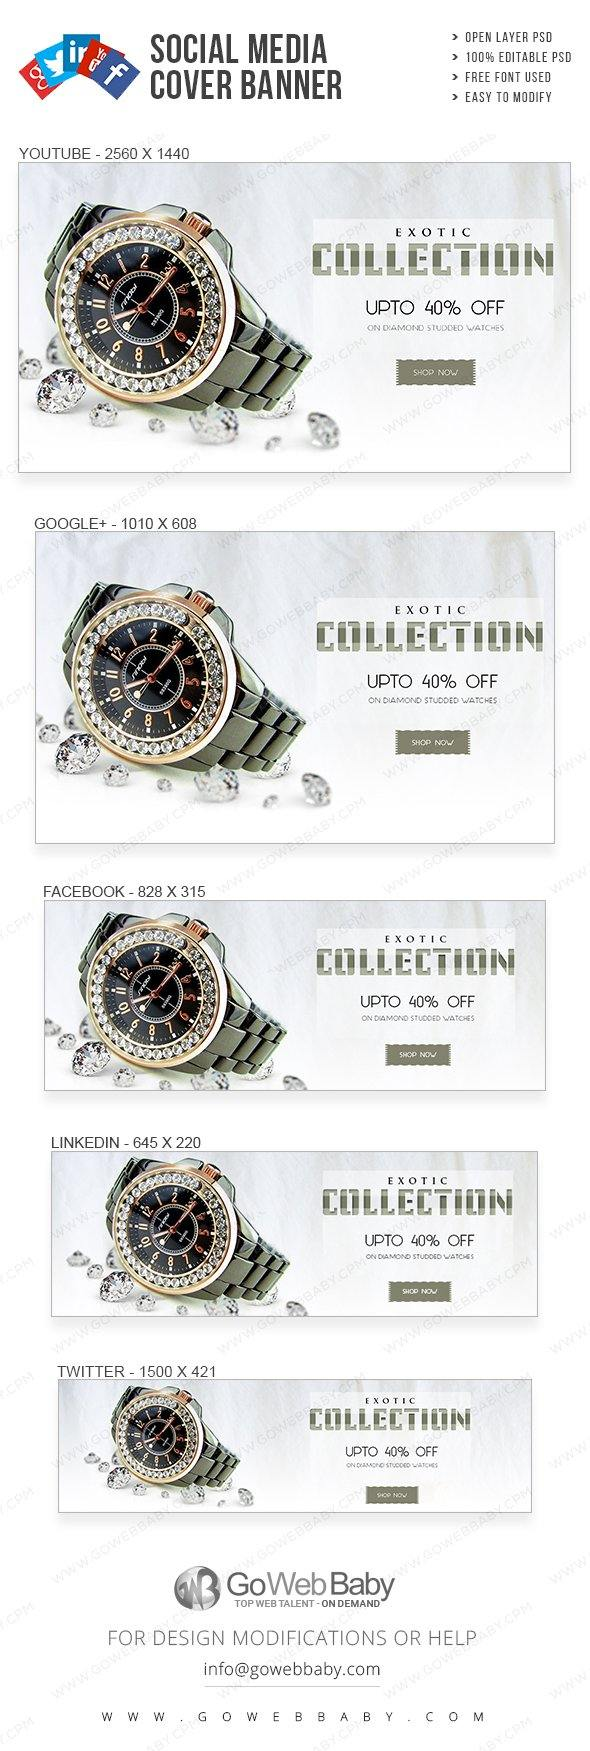 Social Media Cover Banner - Exotic Watch Collection For Website Marketing - GoWebBaby.Com